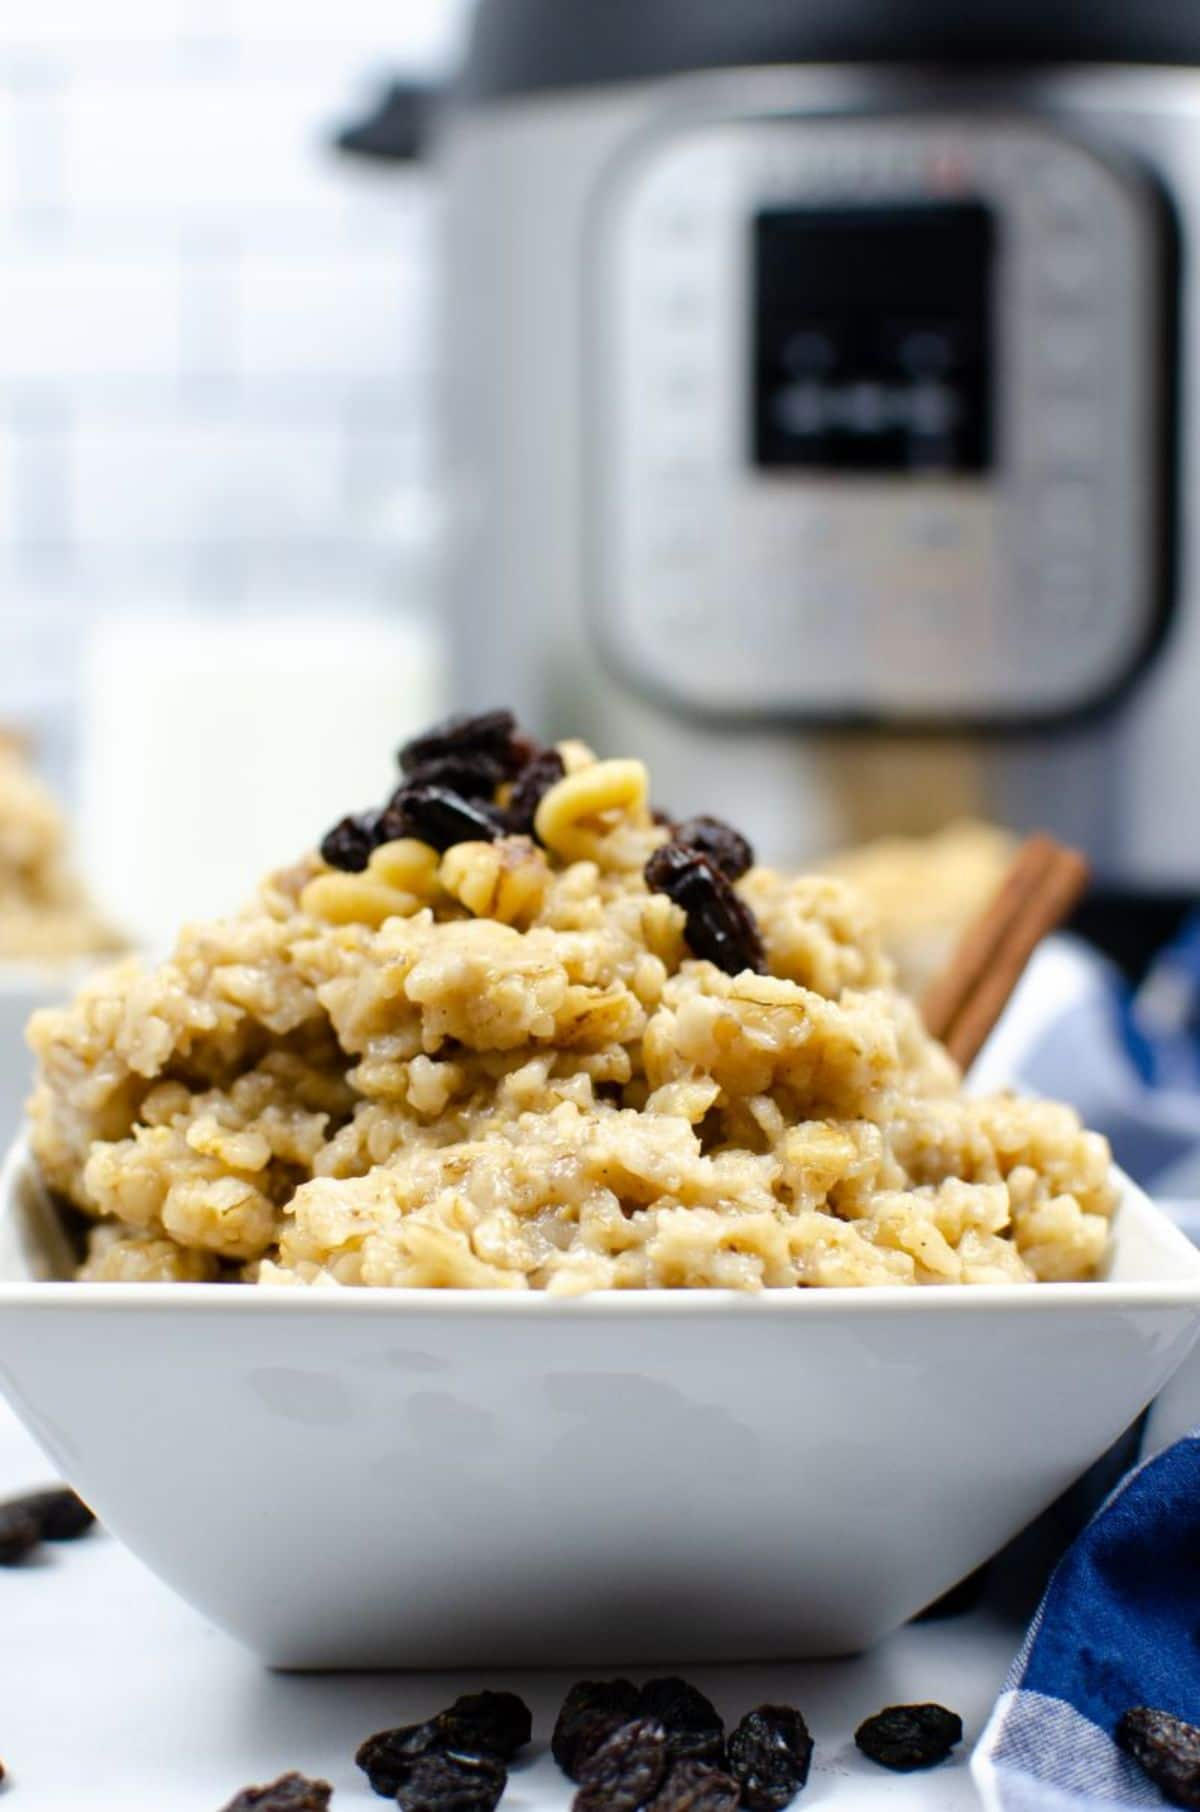 A vertical image of Instant Pot Oatmeal in a white square bowl topped with nuts and dried raisins and a blurred Instant Pot in the background.